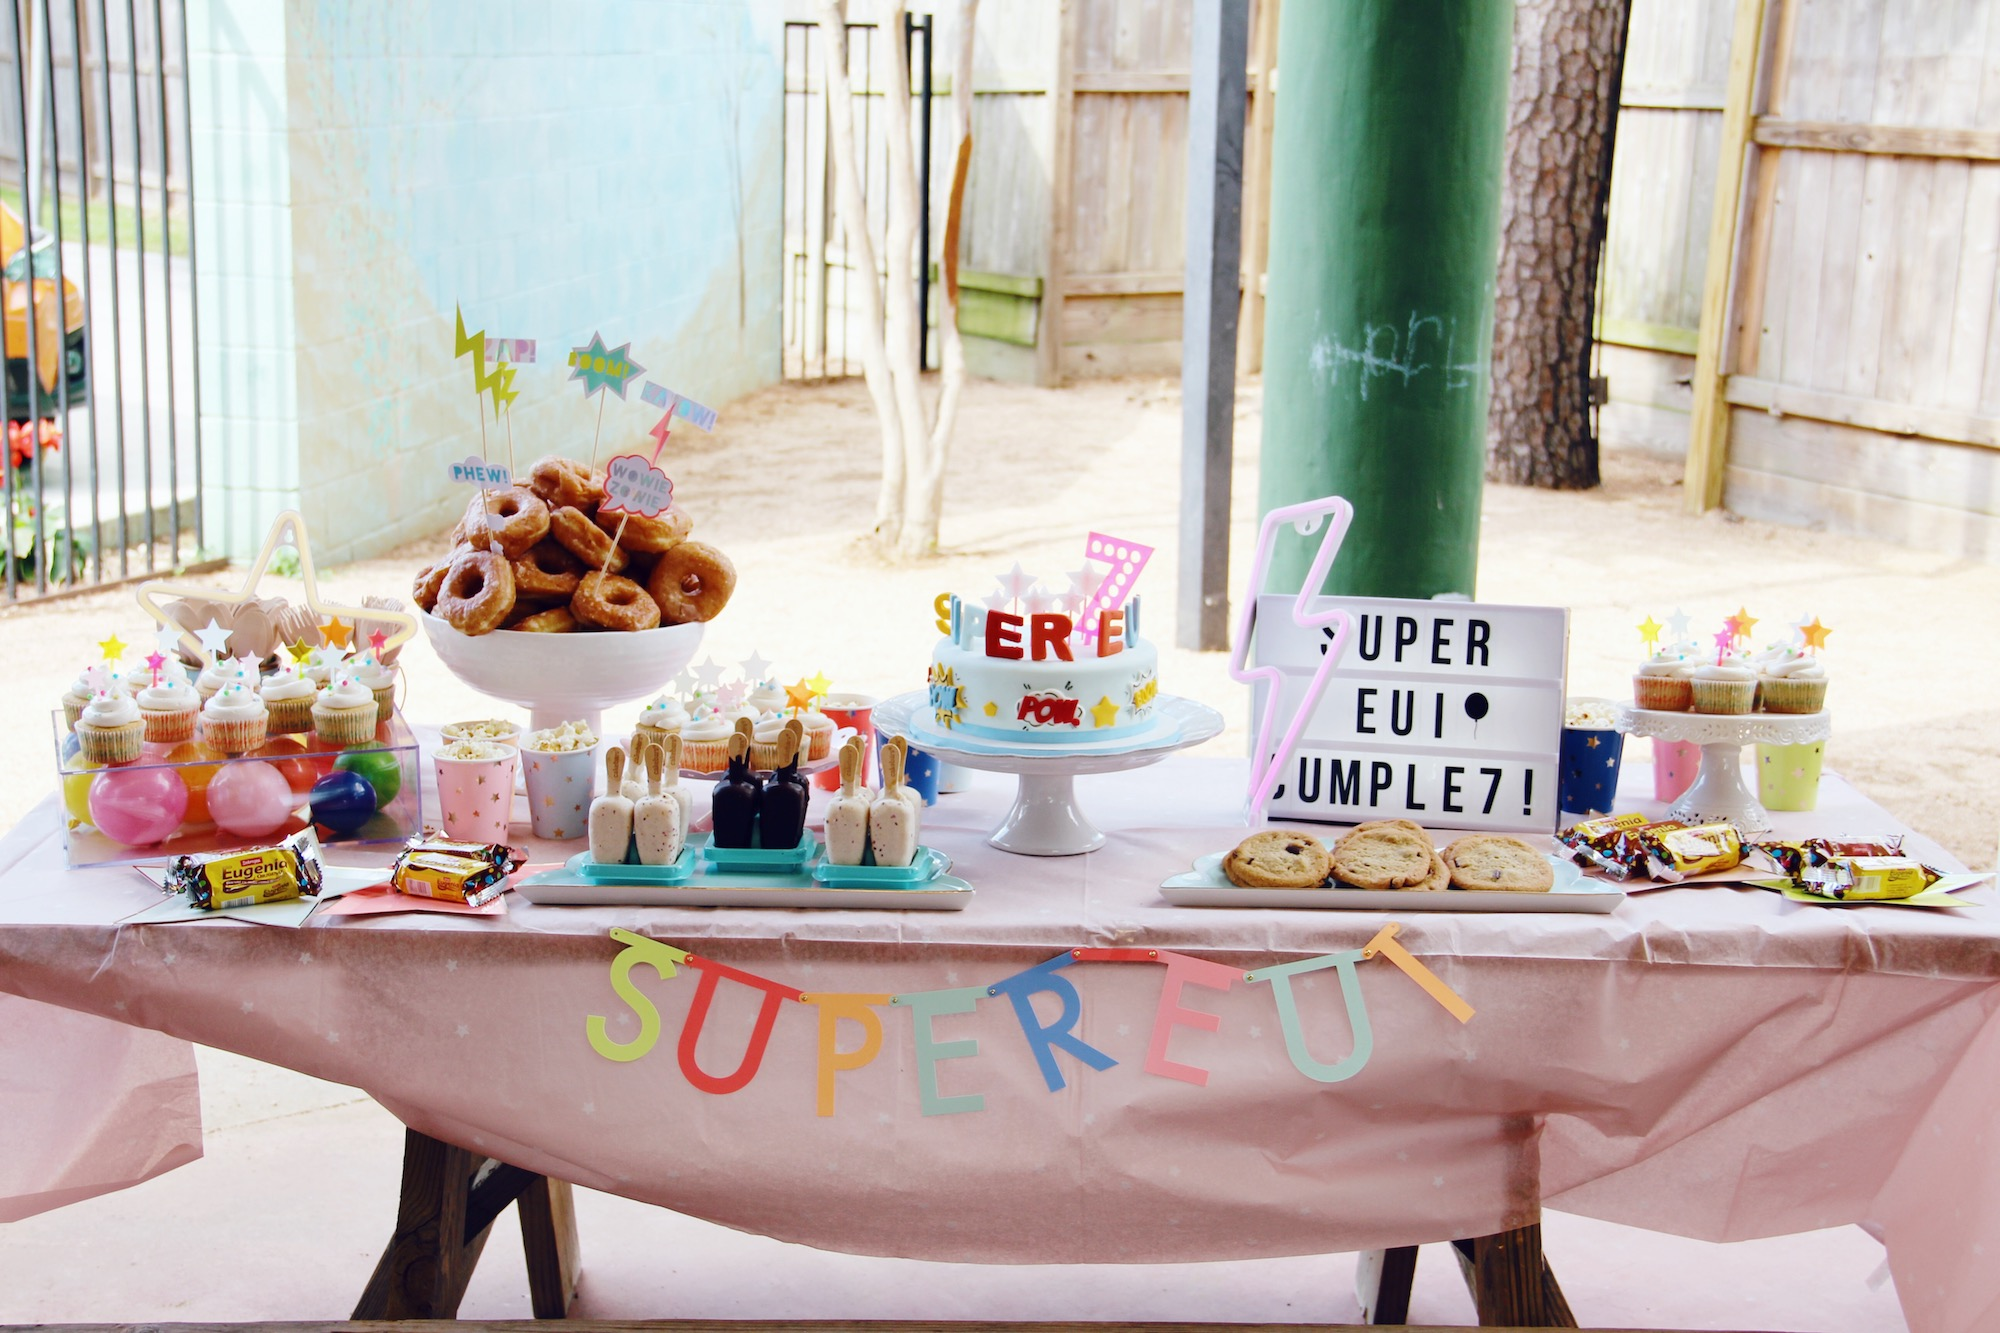 SuperEui cumple 7 | Fiesta Supergirls